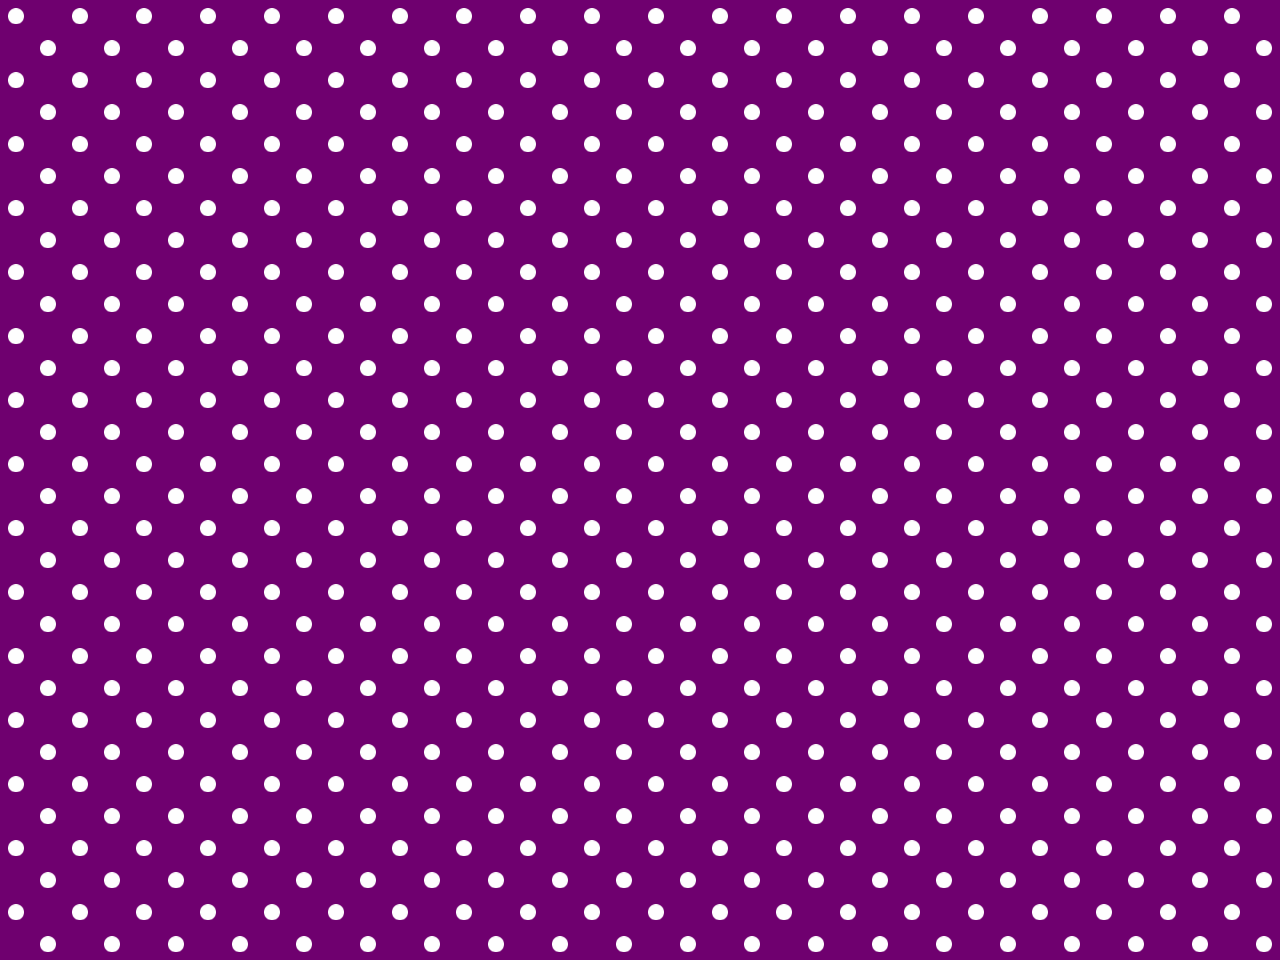 all sizes polkadotted background for twitter or other